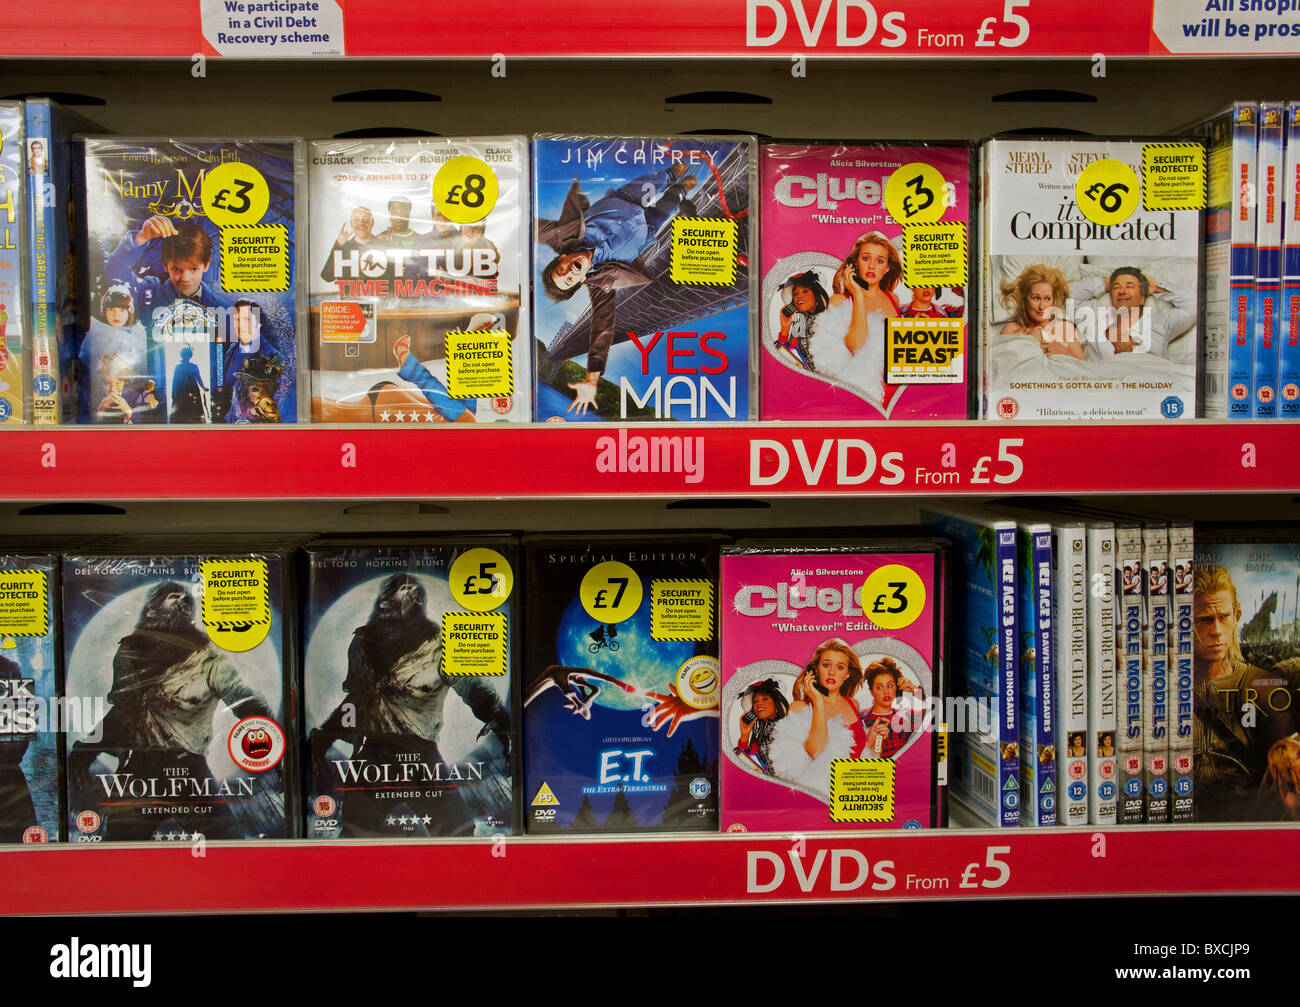 DVDS for sale in UK supermarket Stock Photo: 33469585 - Alamy